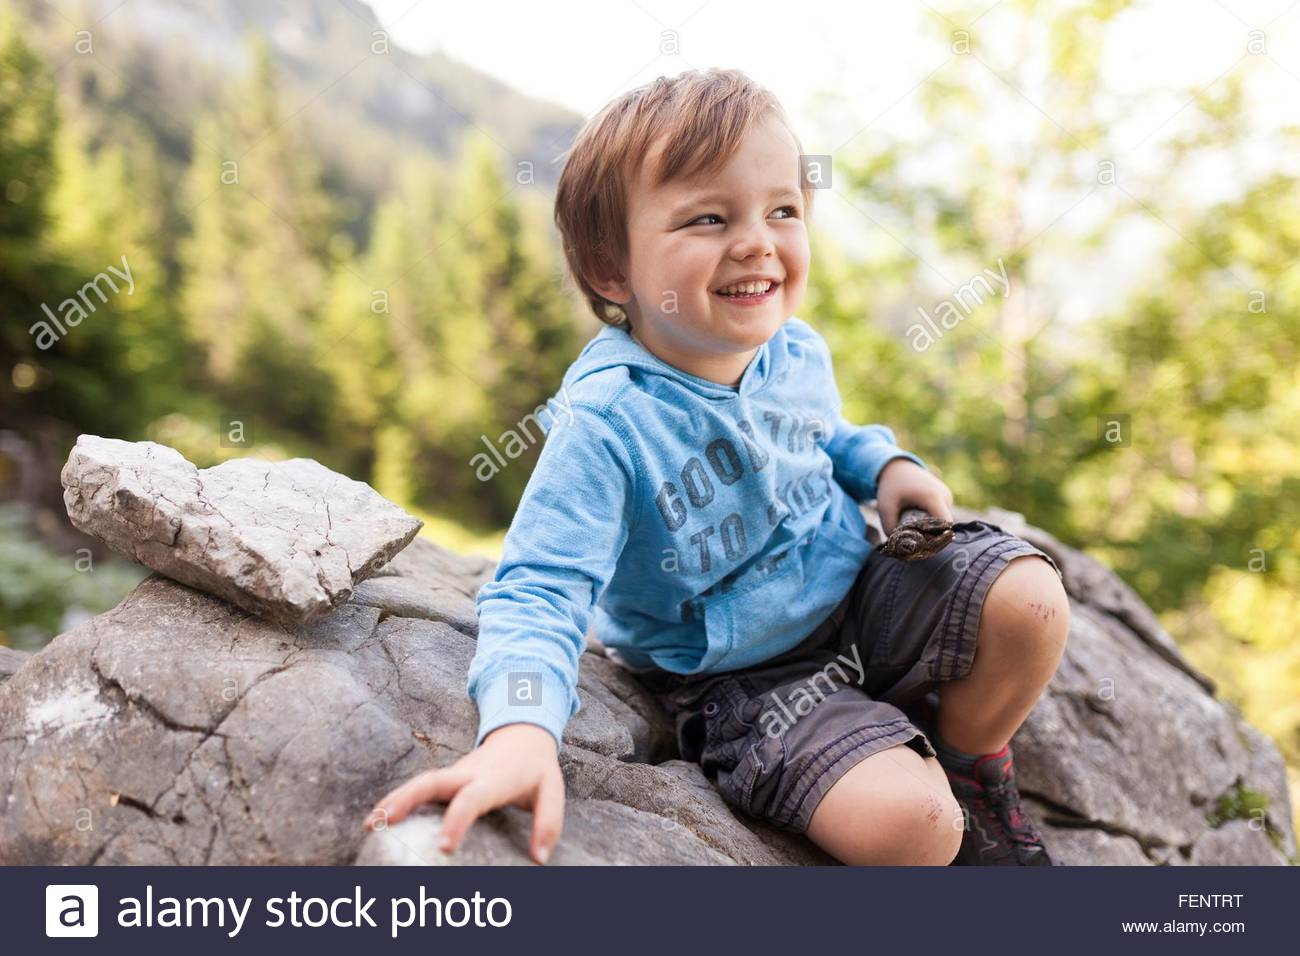 Portrait of young boy sitting on rock Photo Stock